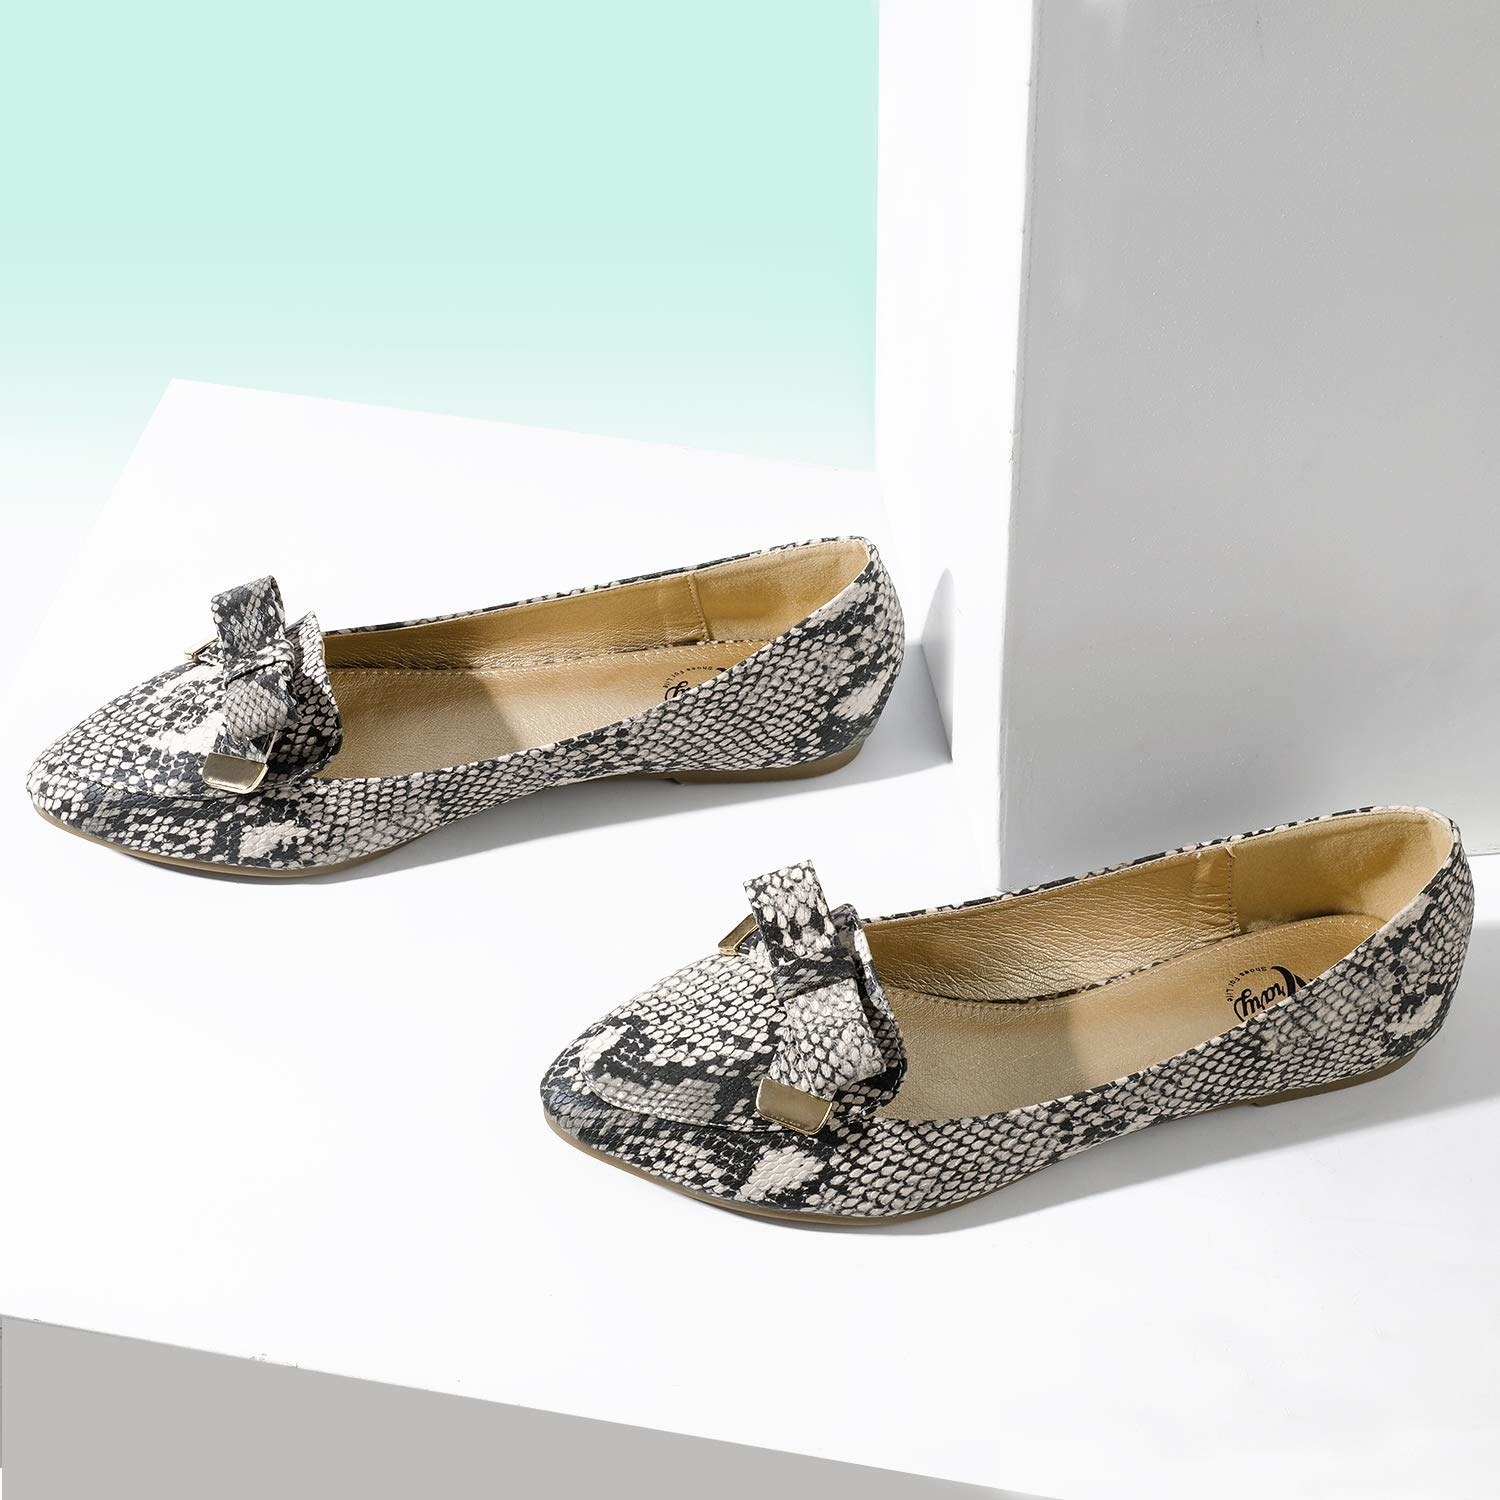 pointed toe flats with a bow on the top and black and white snakeskin print